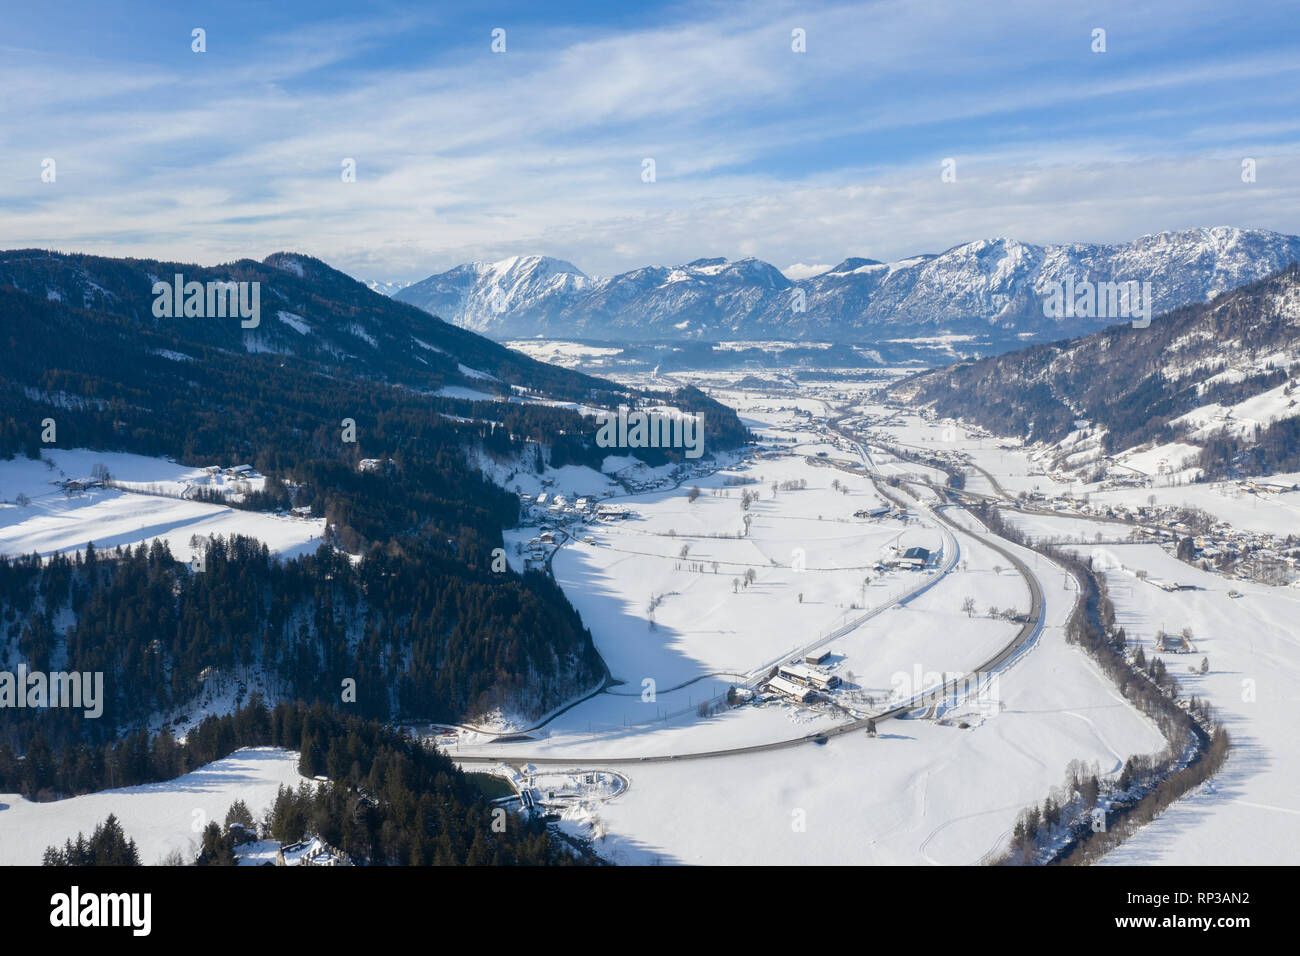 Panoramic view of the winter mountains in Alps Austria. View from above. Landscape photo captured with drone. Europe. - Stock Image